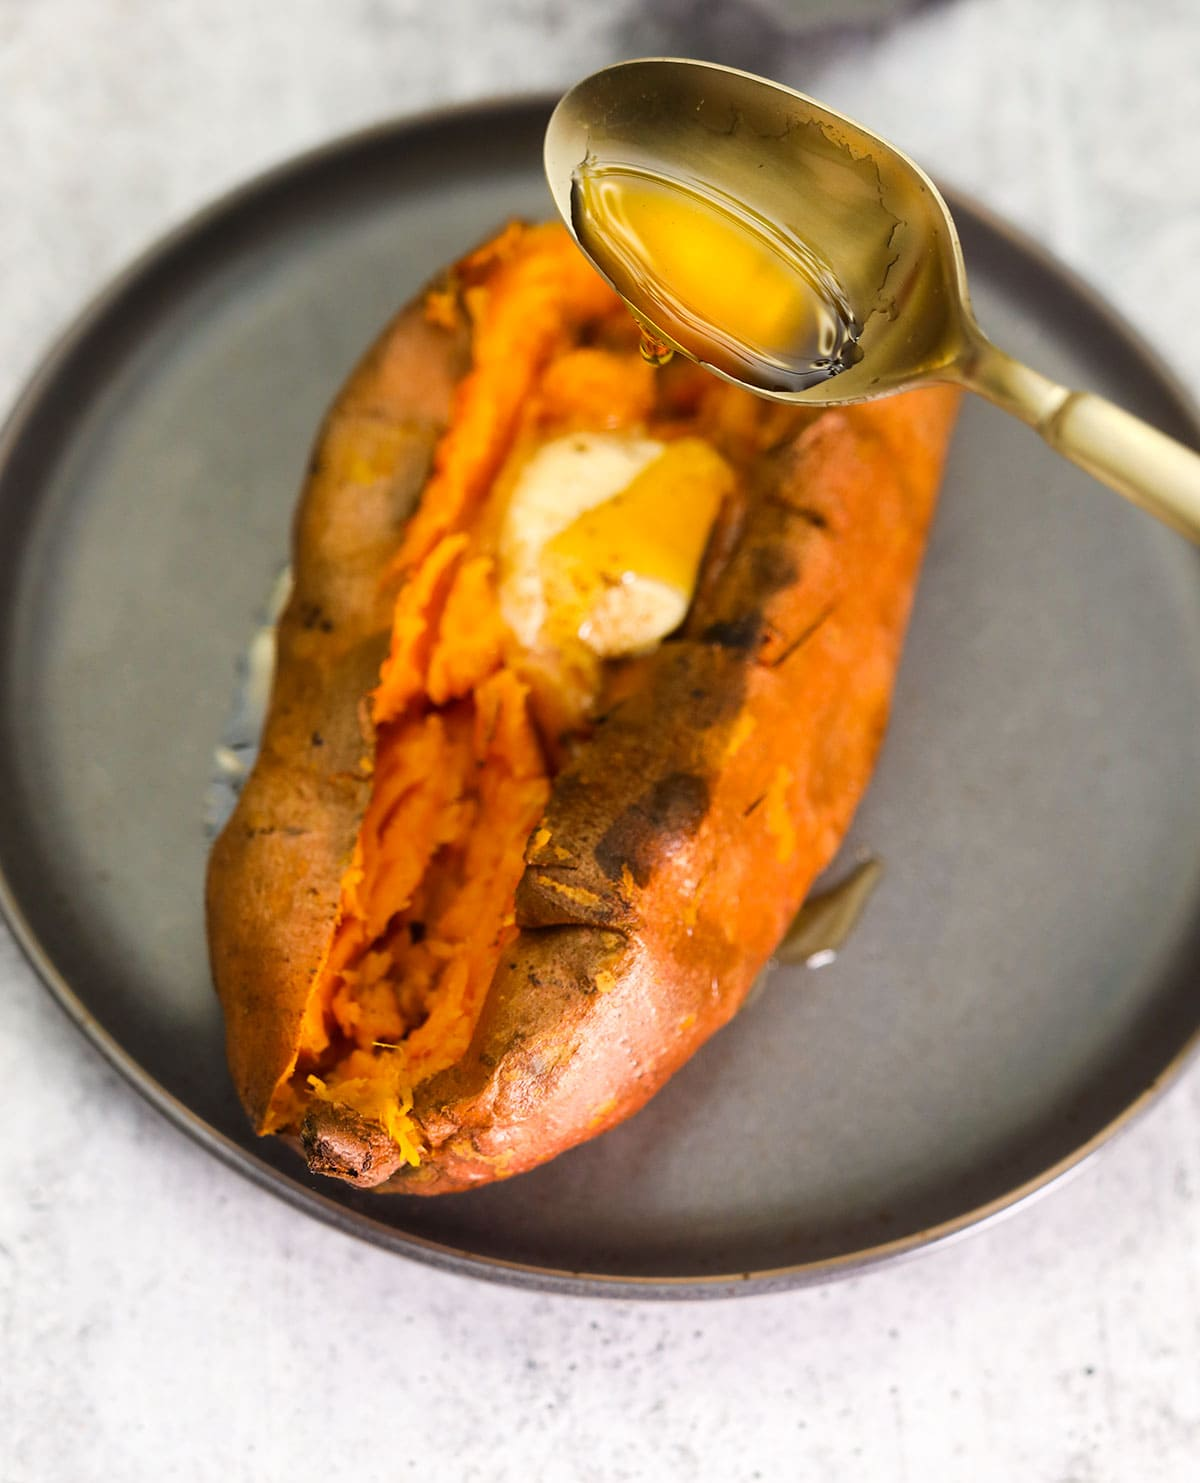 baked sweet potato with maple drizzling